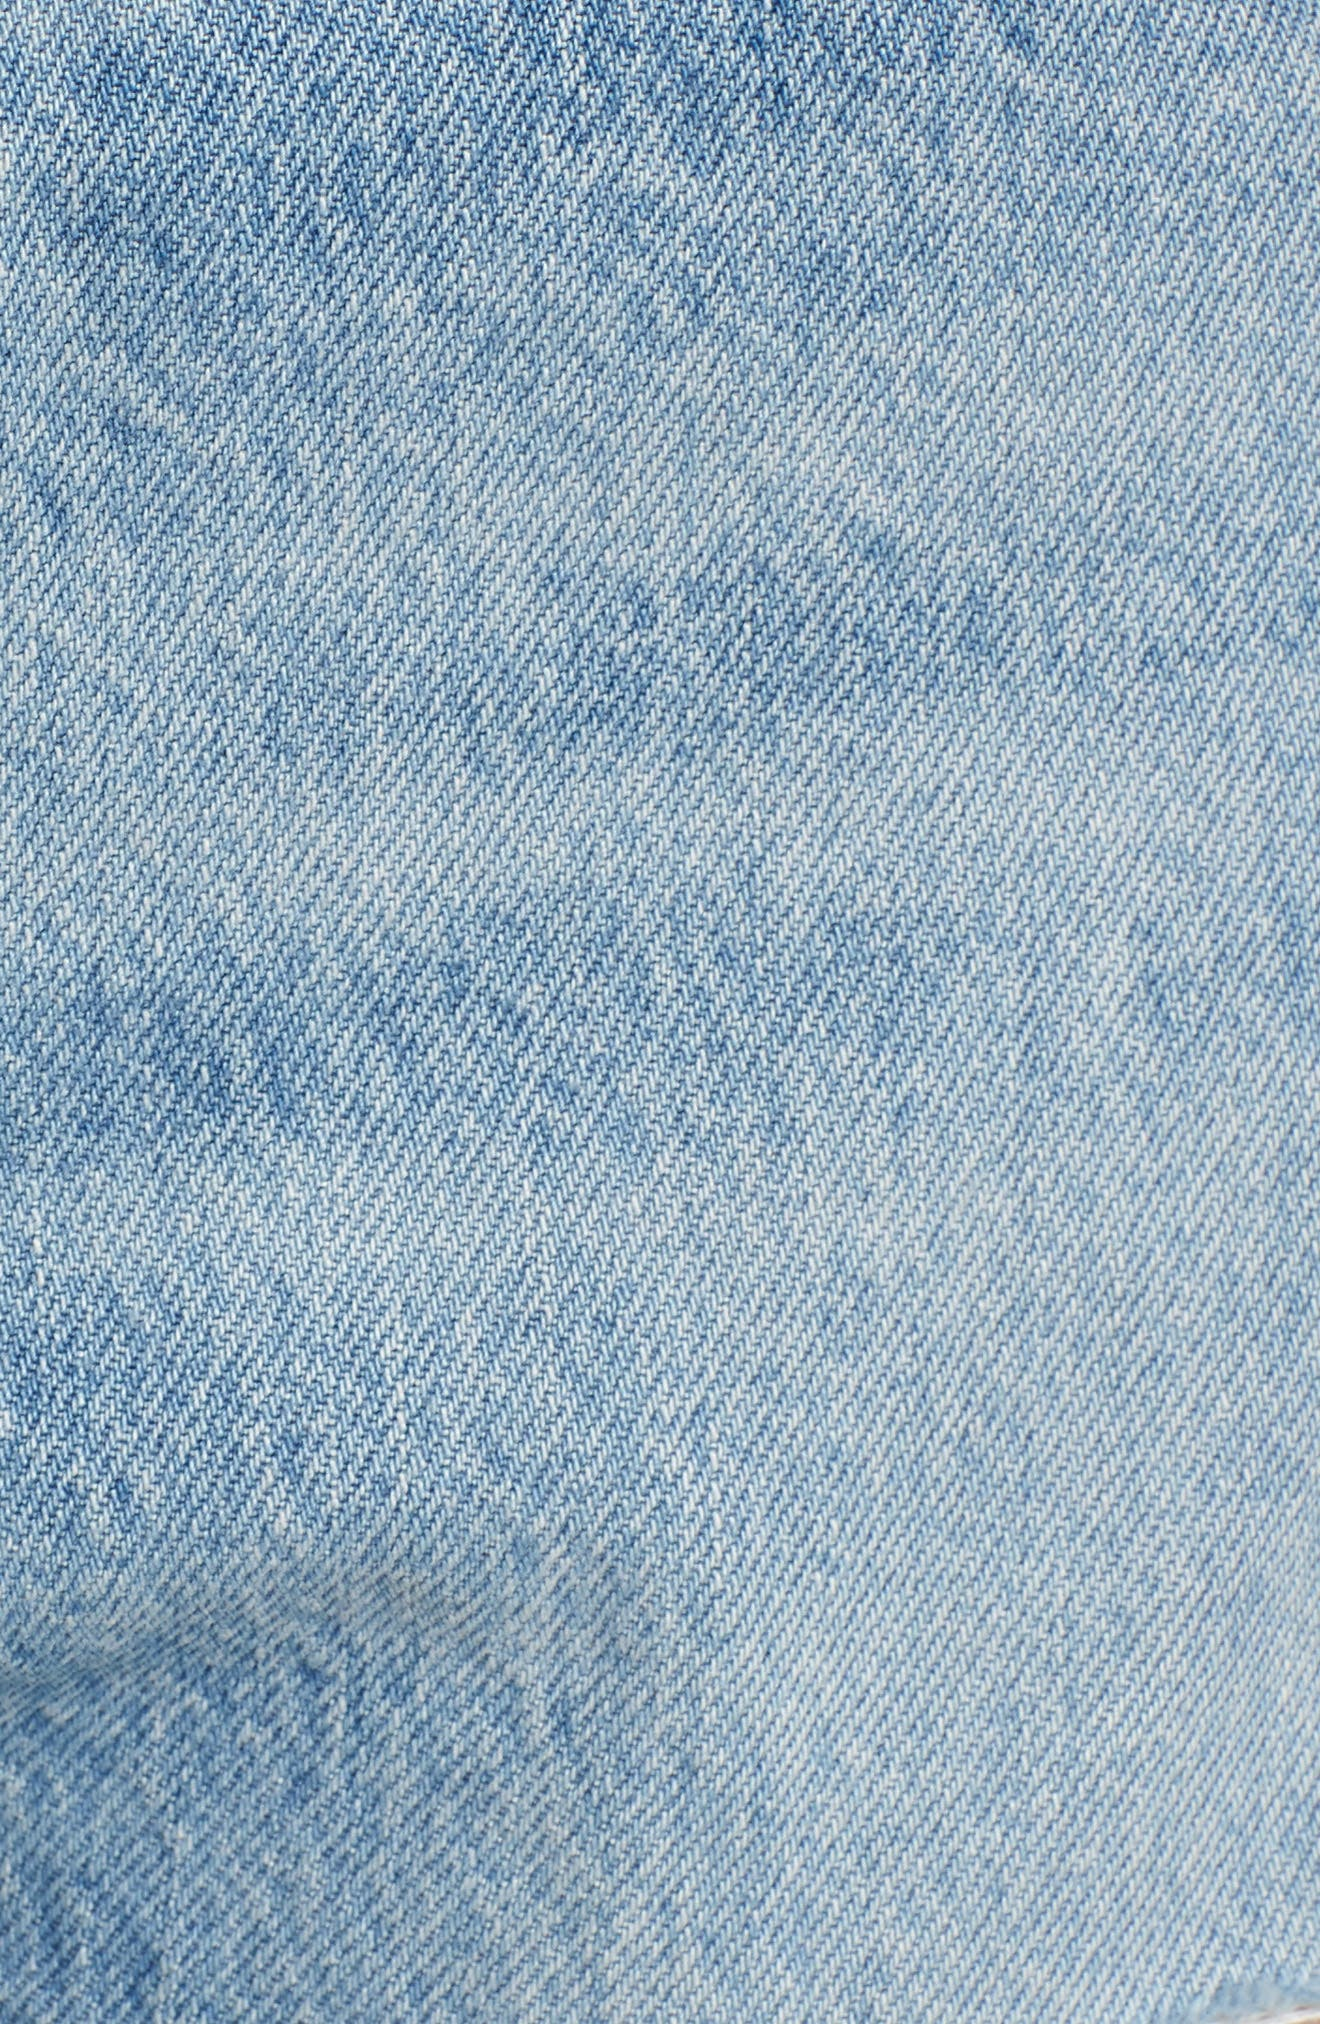 LEVI'S<SUP>®</SUP>, Wedgie Ripped Straight Leg Jeans, Alternate thumbnail 6, color, AUTHENTICALLY YOURS